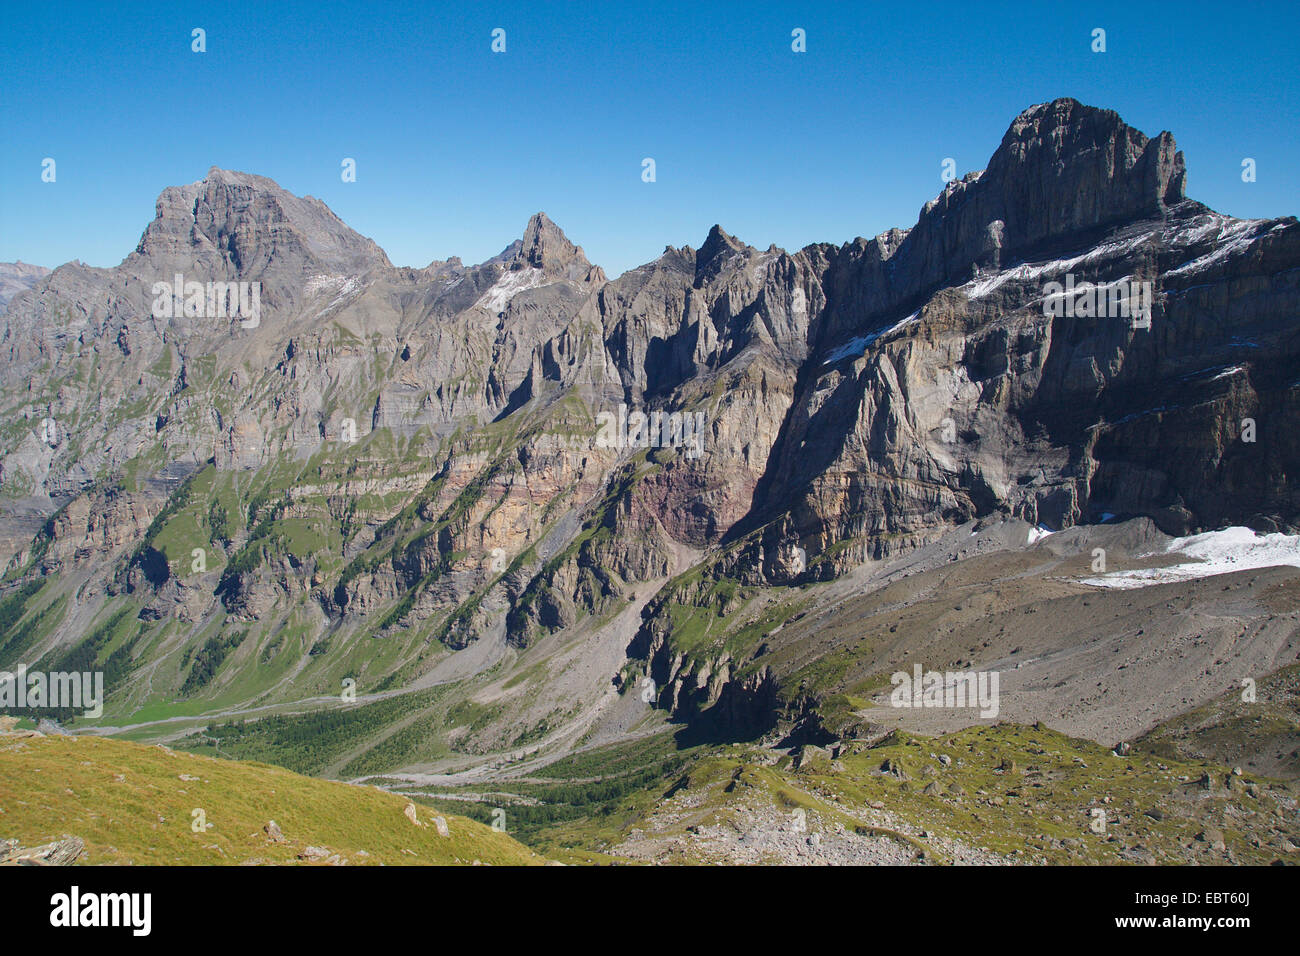 mountain scenery of Grand Muveran, Petit Muveran and Dent Favre with Morcles folding, Switzerland, Valais - Stock Image